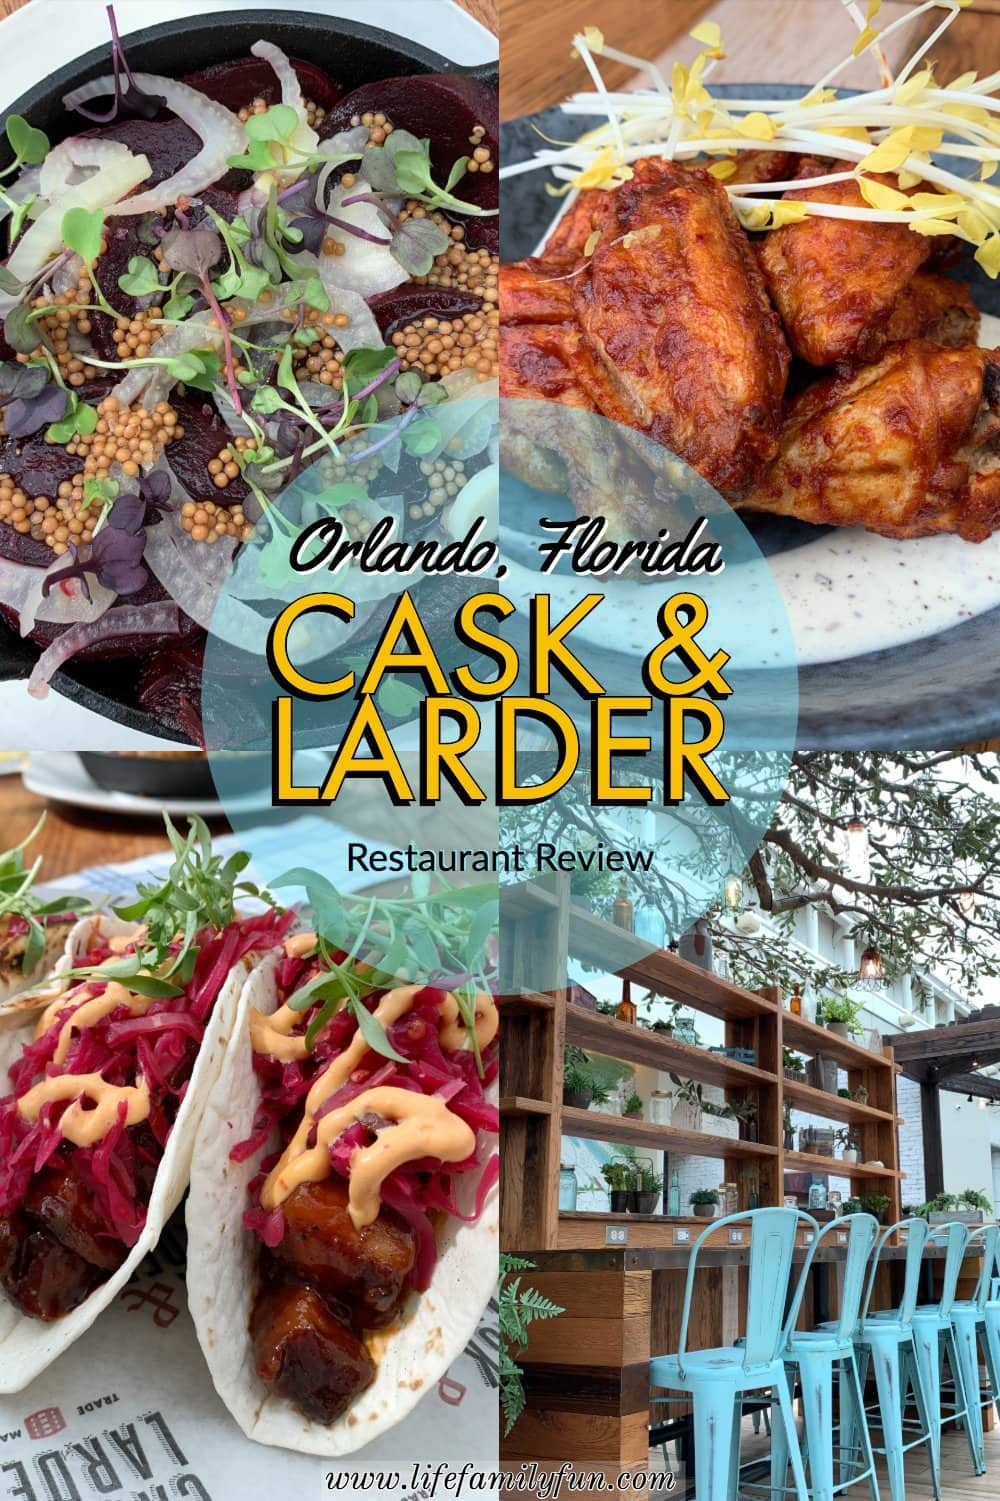 Cask & Larder Restaurant in Orlando International Airport